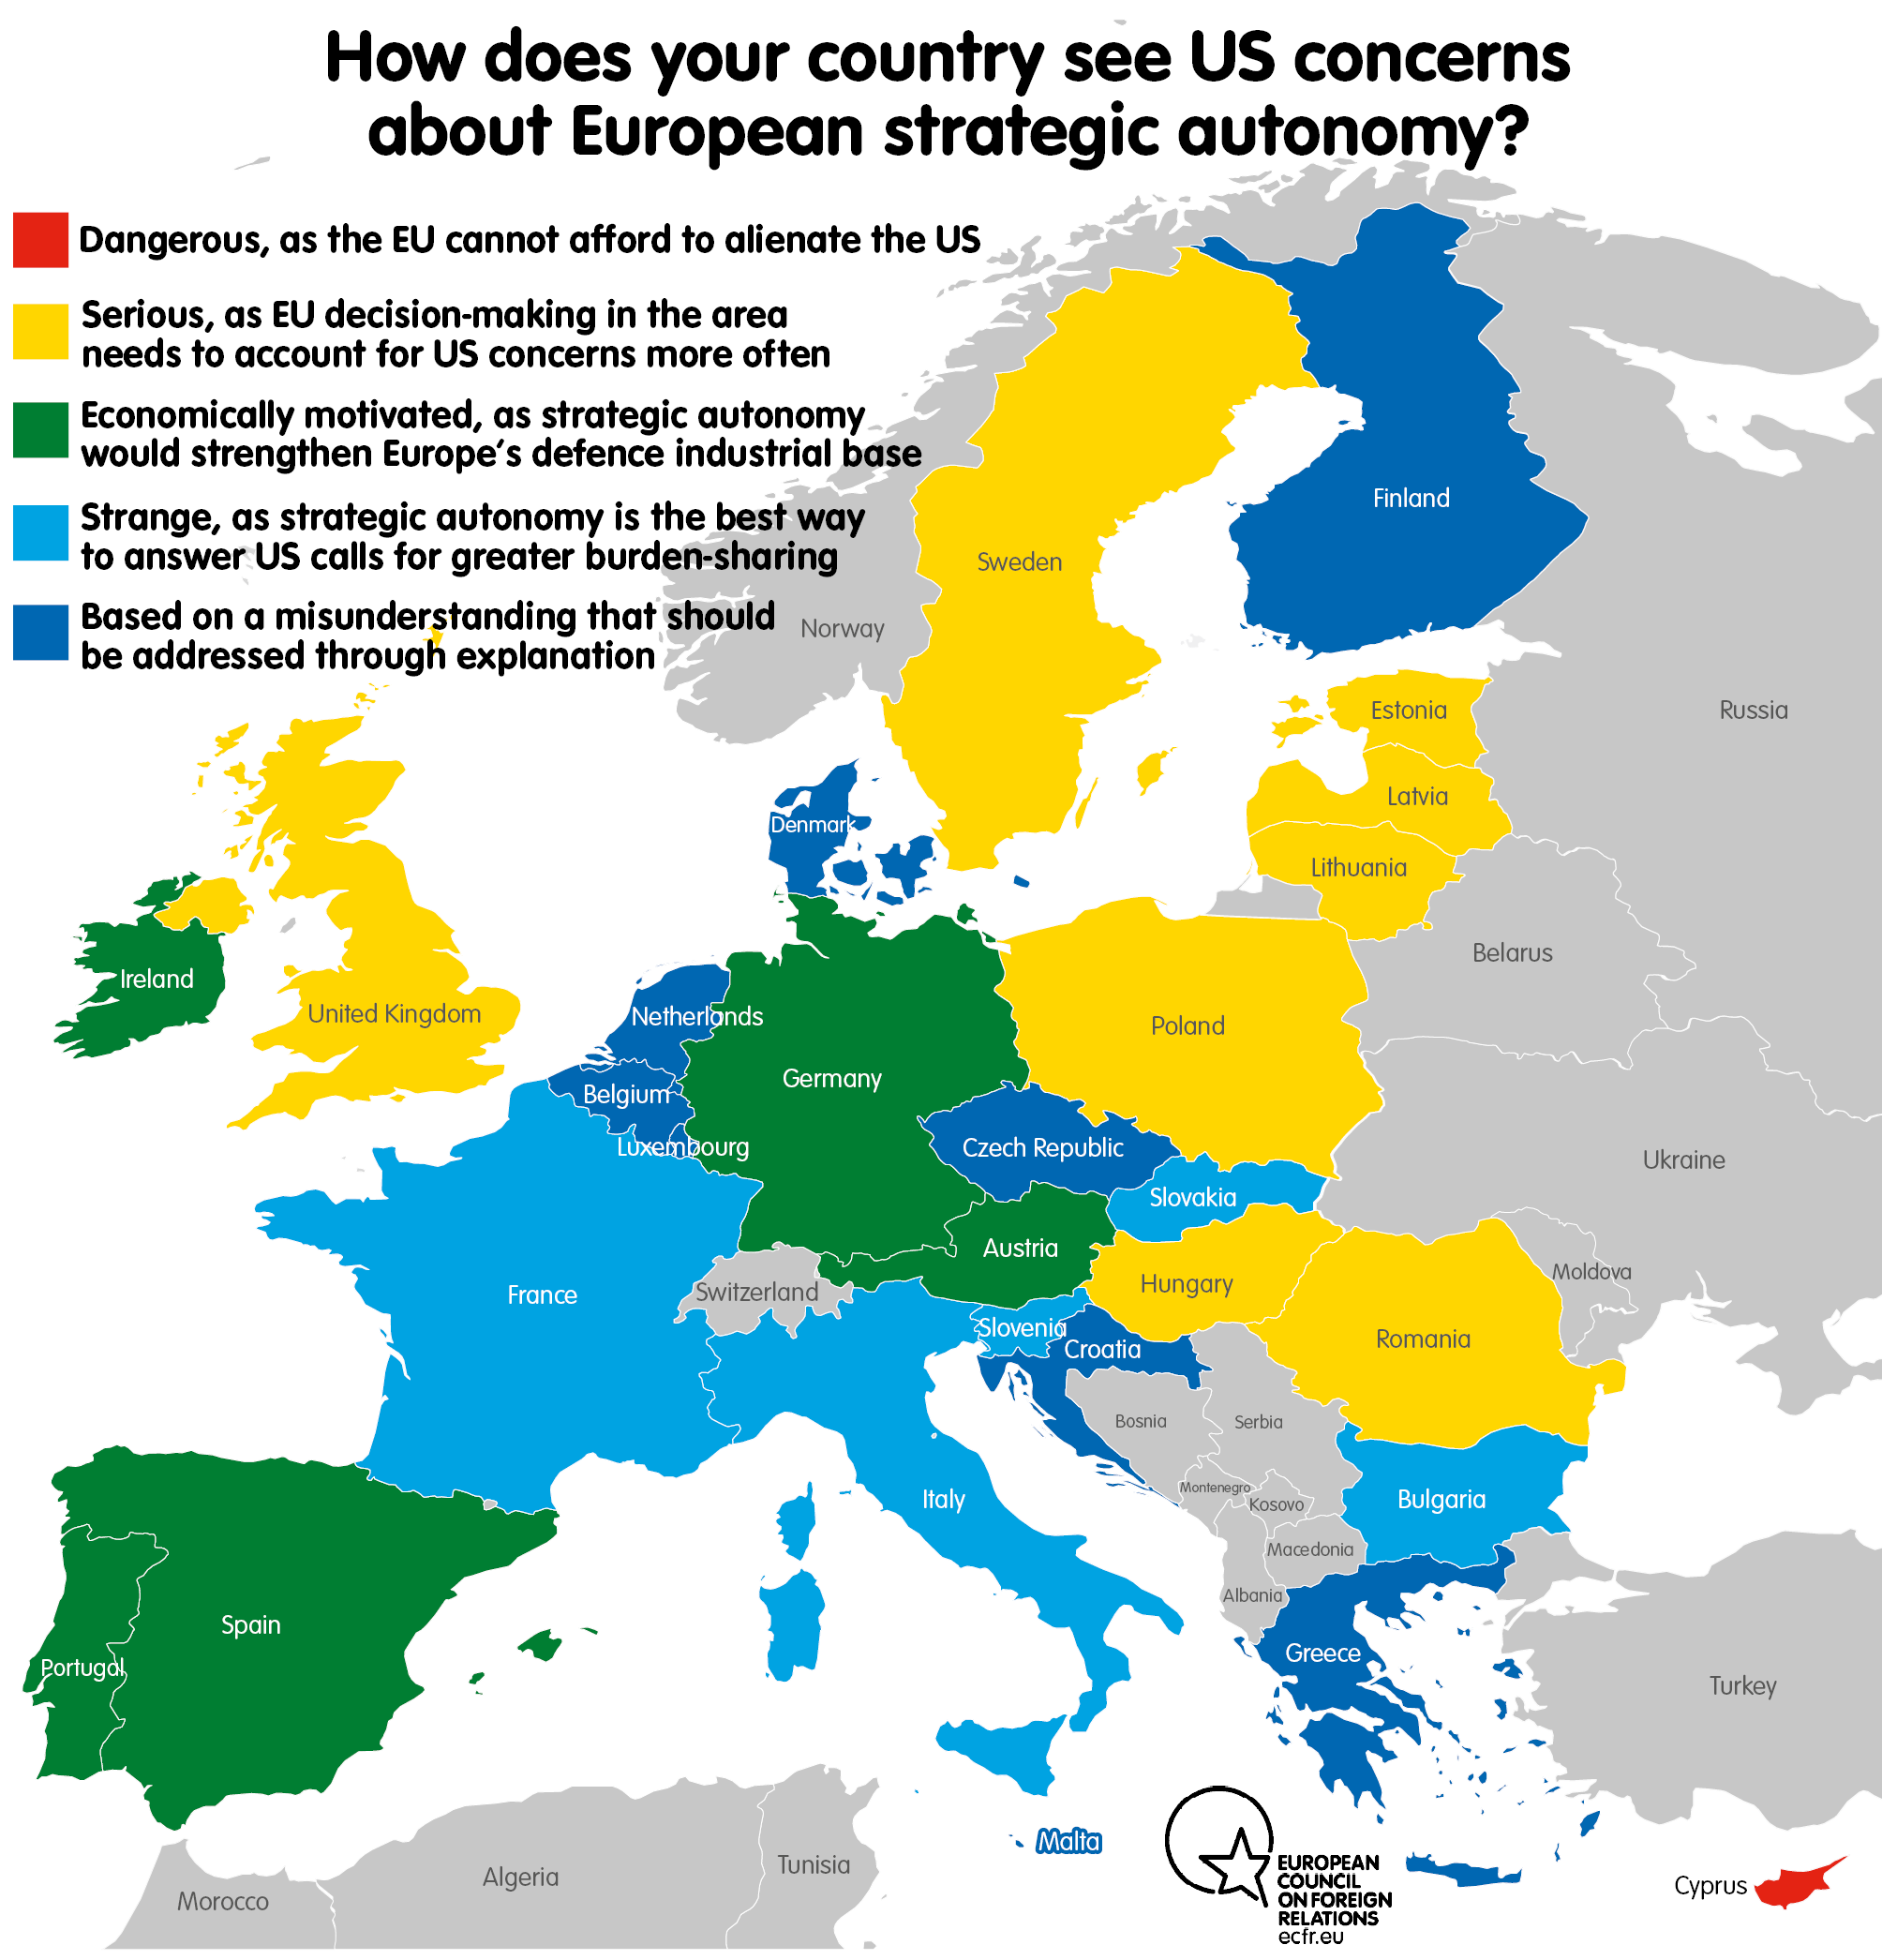 How does your country see US concerns about European strategic autonomy